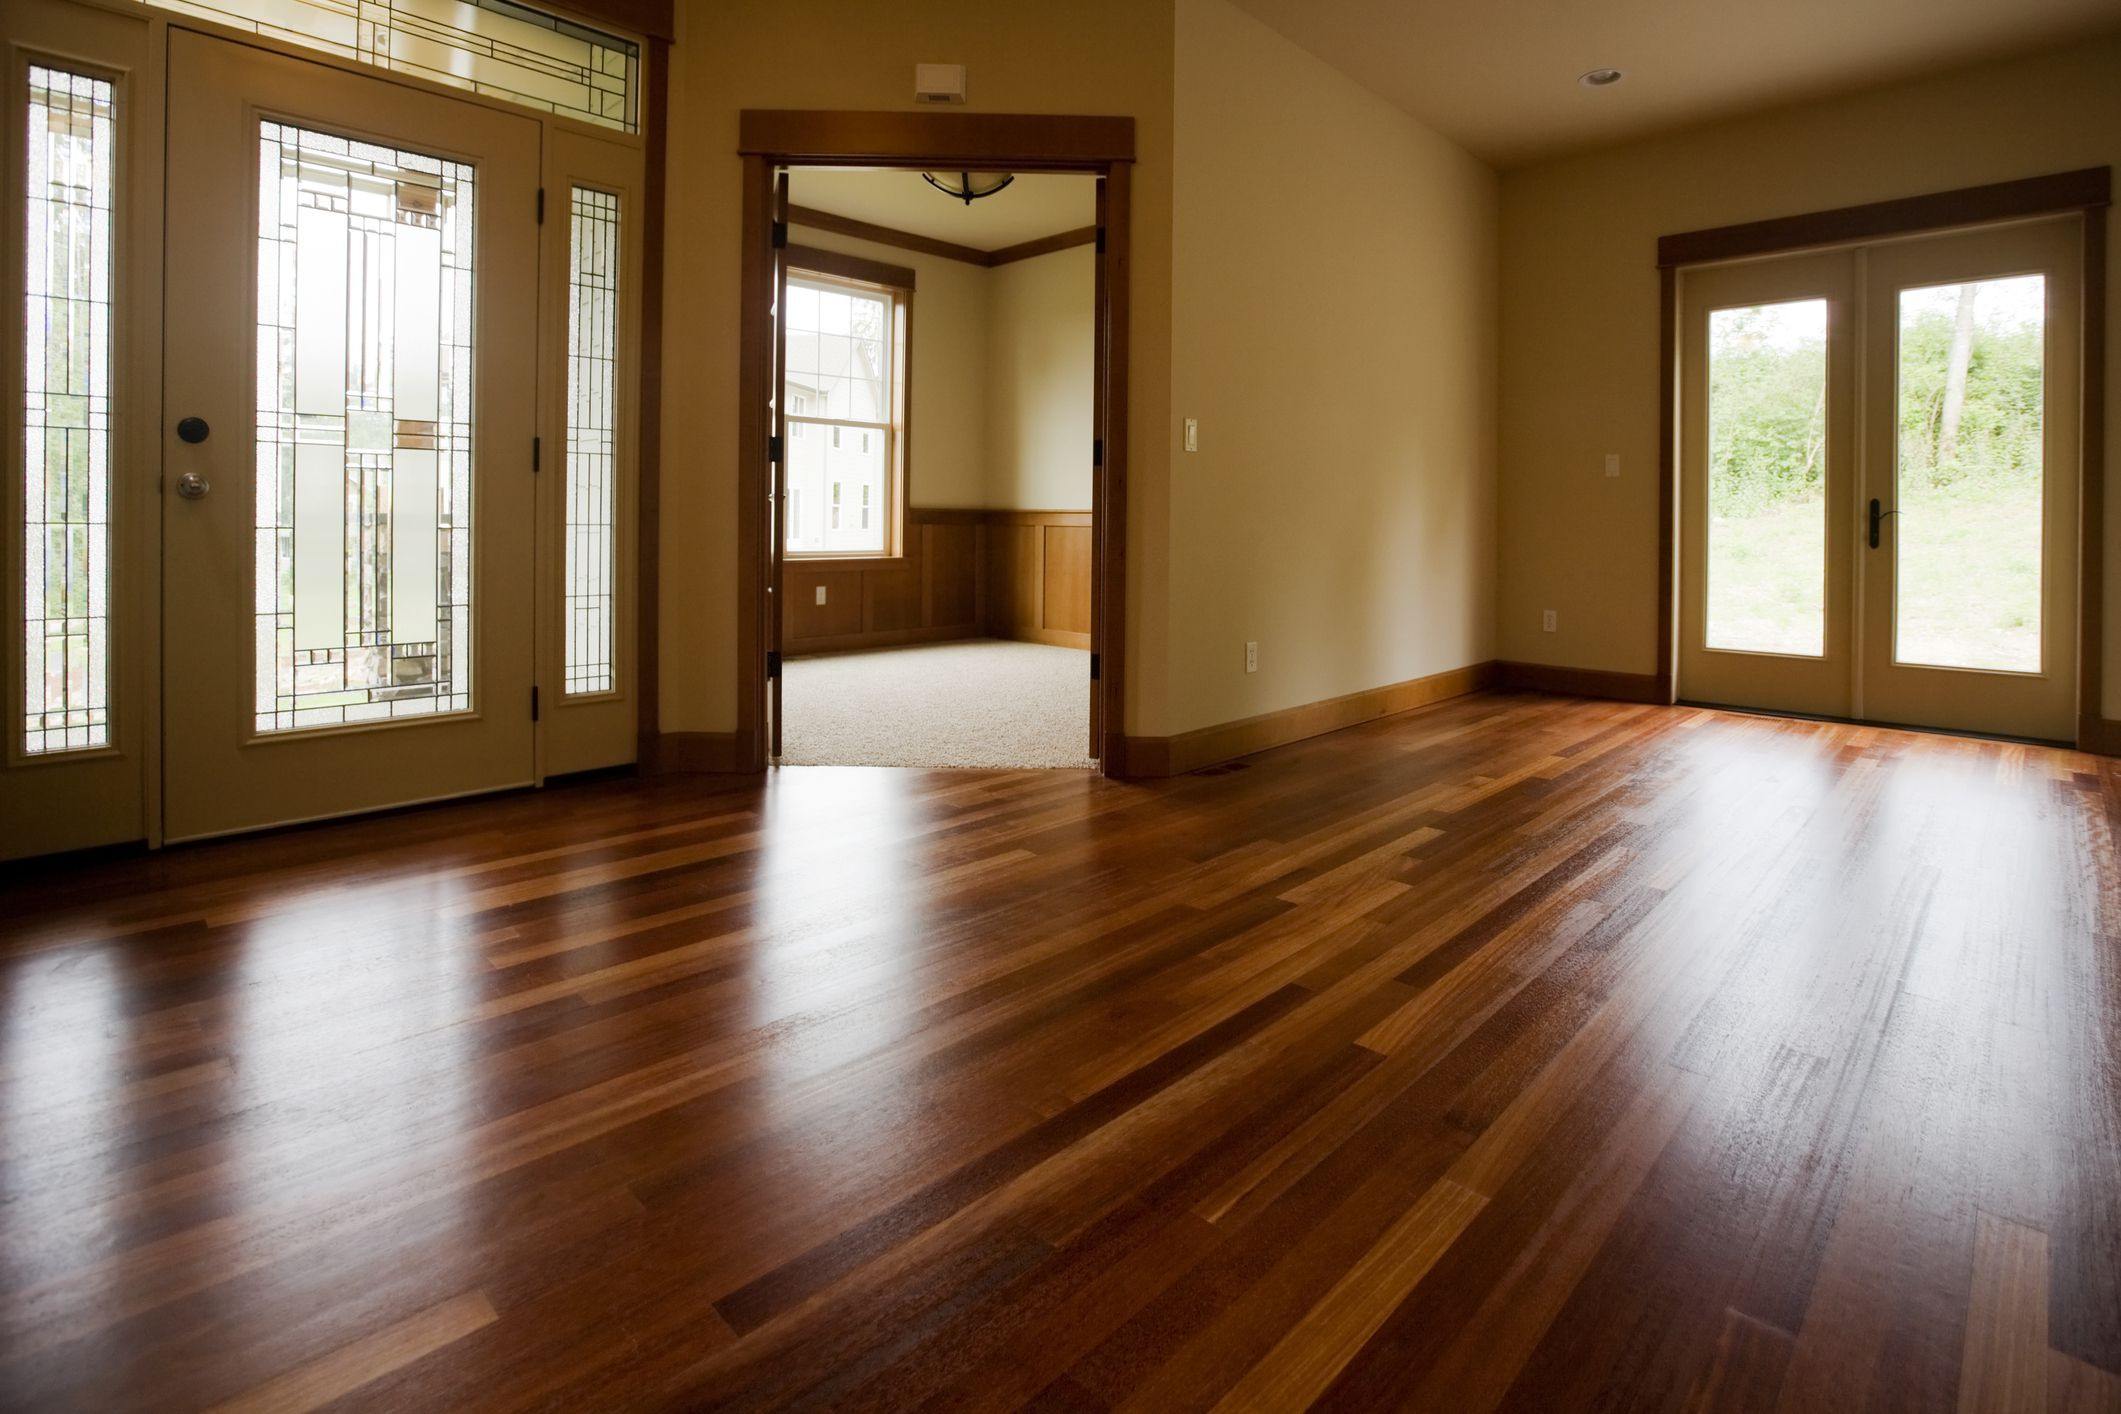 4 inch red oak hardwood flooring of types of hardwood flooring buyers guide with regard to gettyimages 157332889 5886d8383df78c2ccd65d4e1